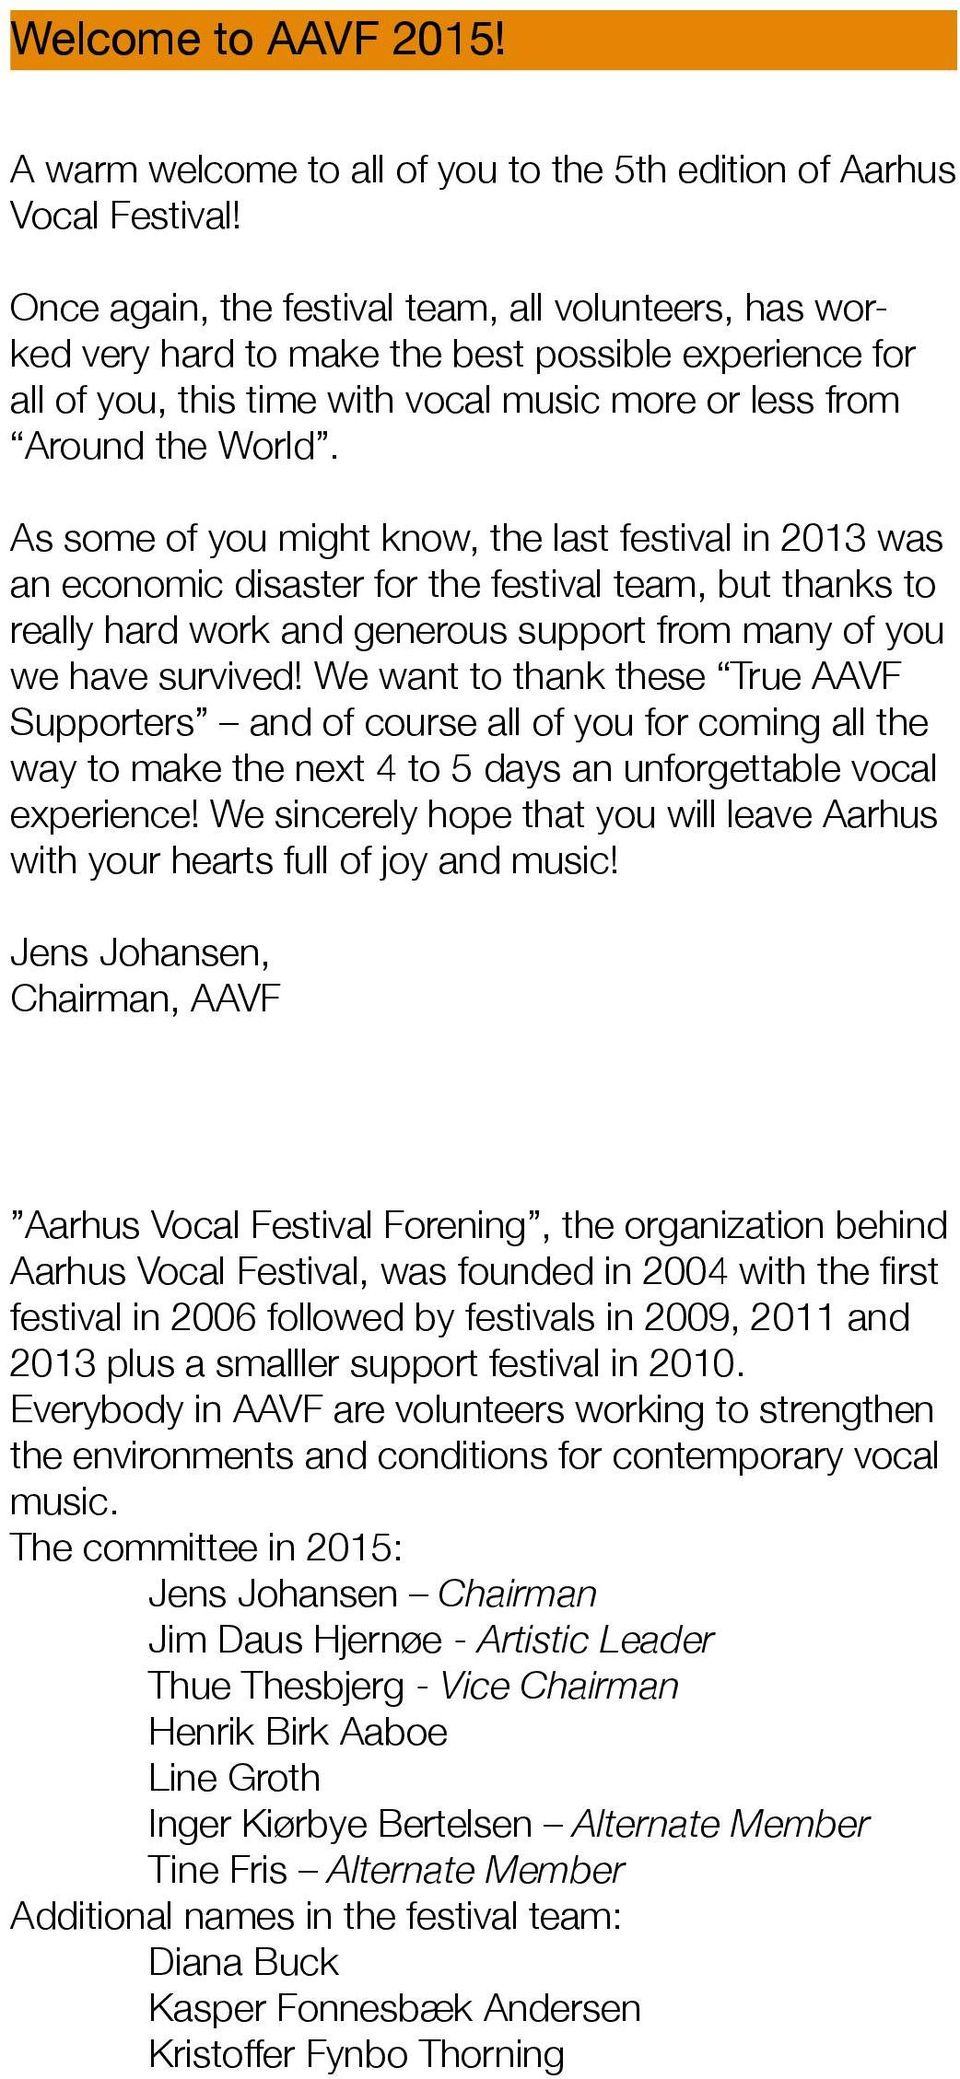 As some of you might know, the last festival in 2013 was an economic disaster for the festival team, but thanks to really hard work and generous support from many of you we have survived!